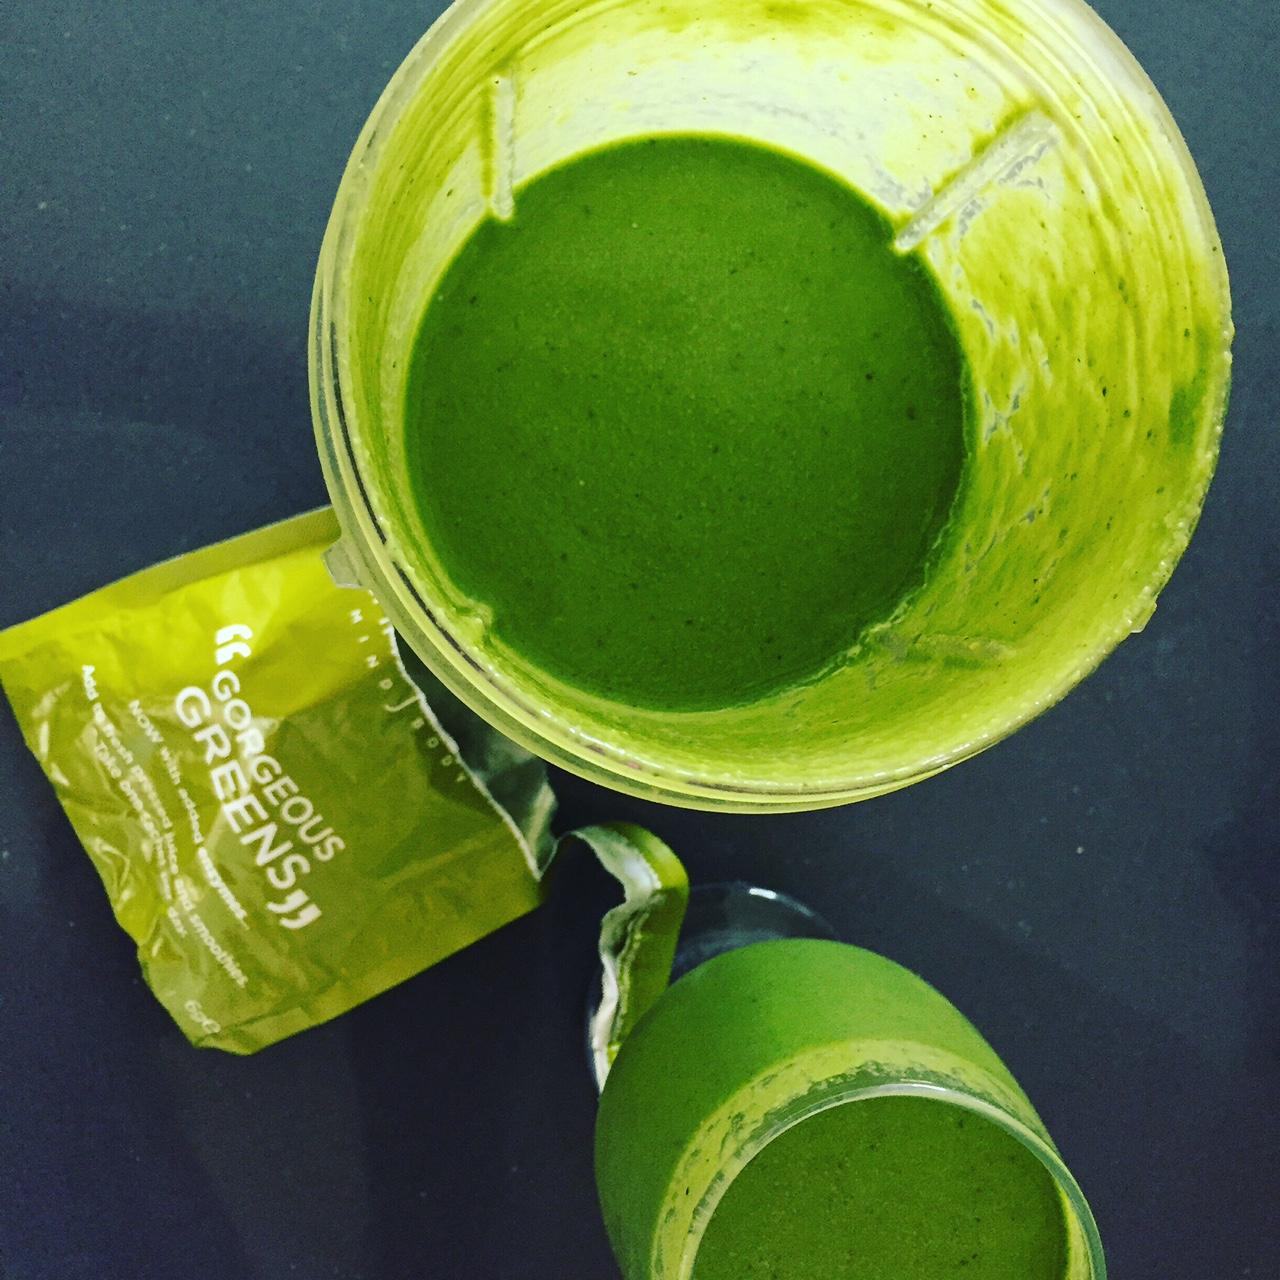 CJMB's Gorgeous Greens Superfood Smoothie